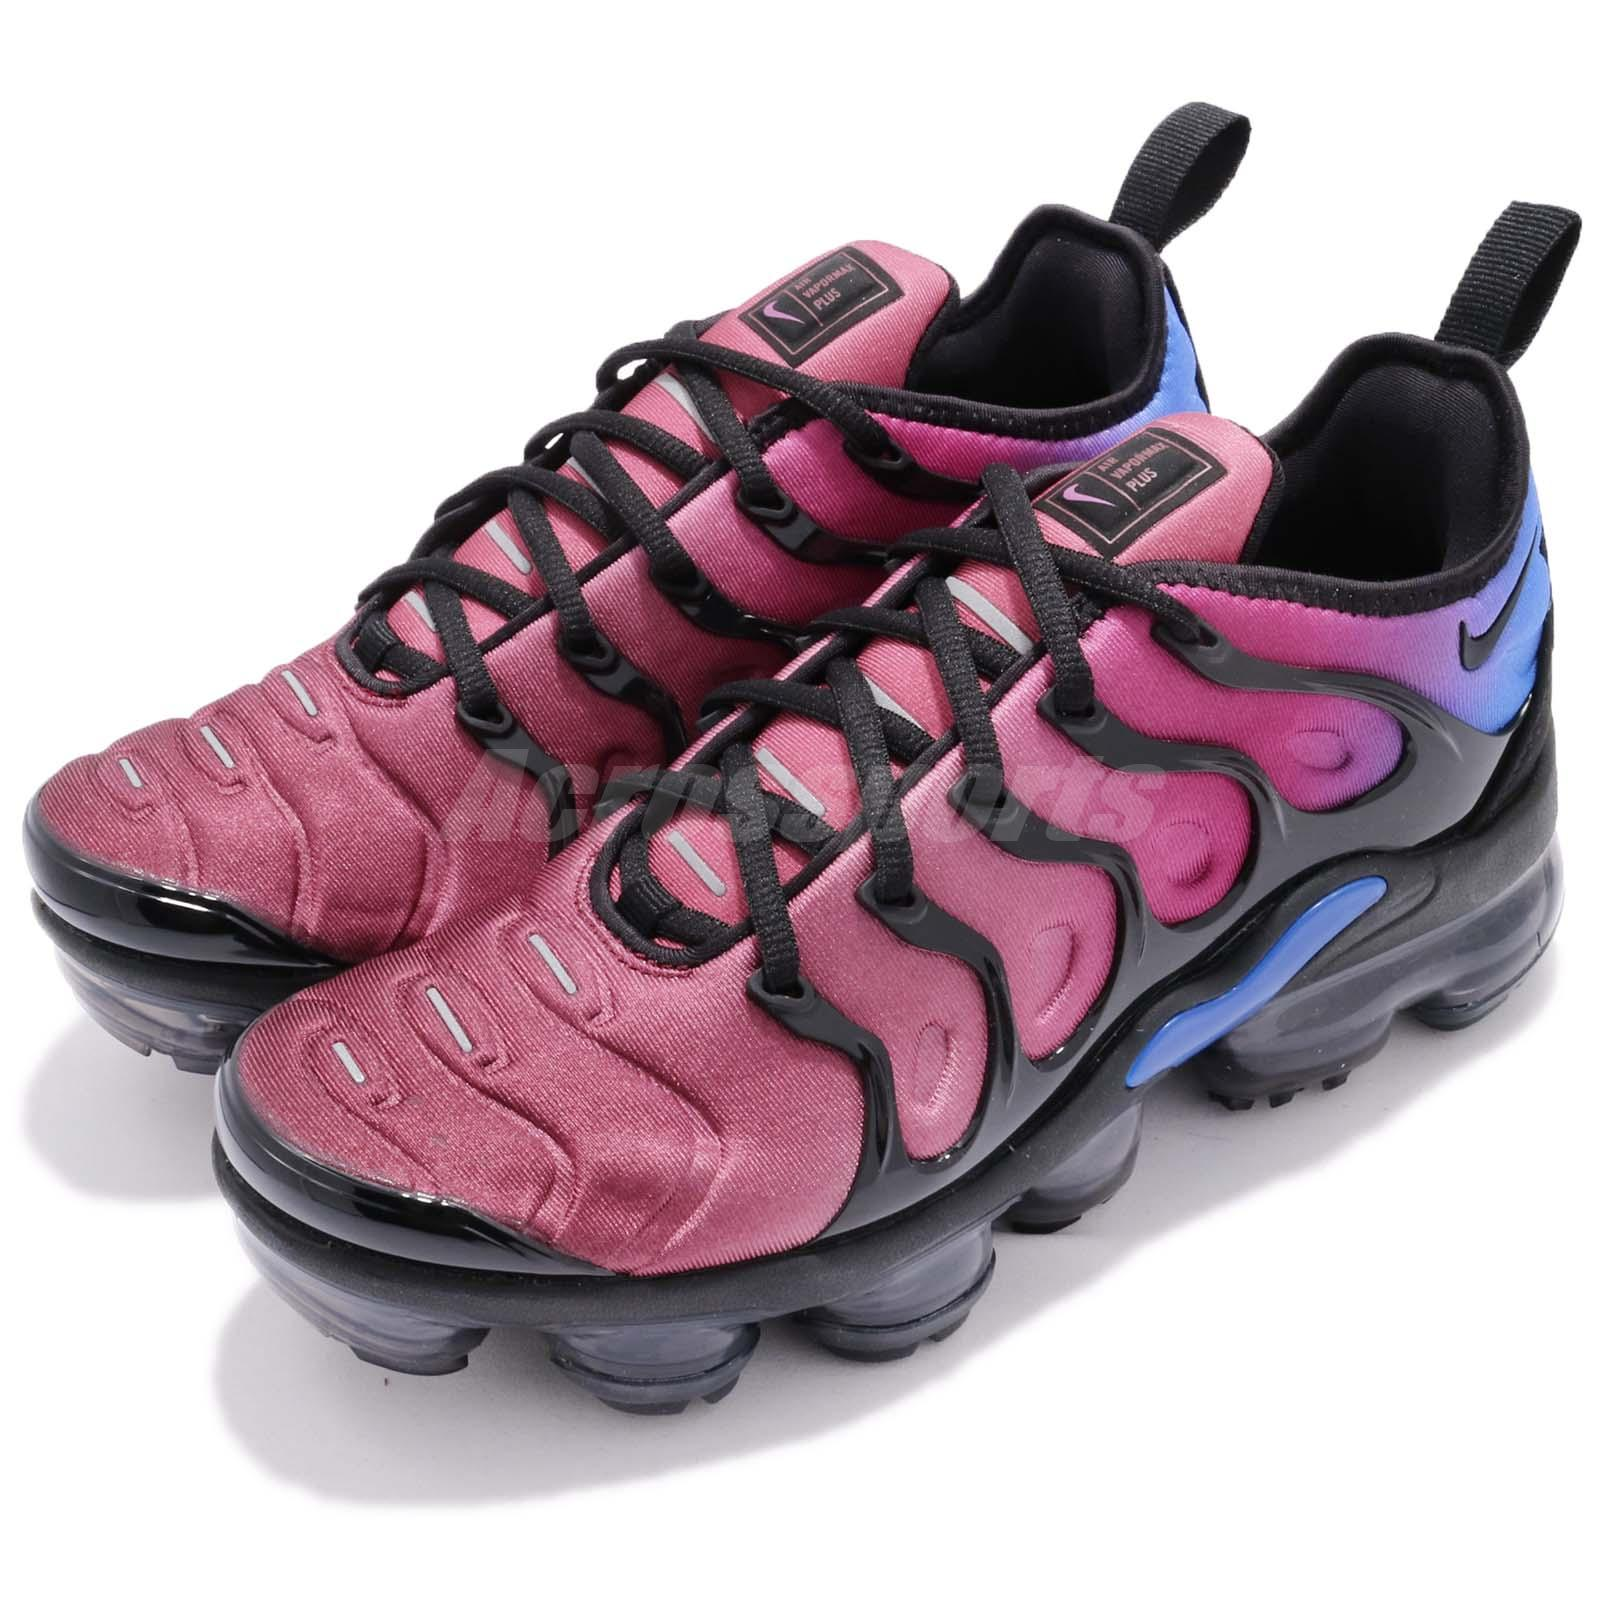 9eae784158e0c Details about Nike Wmns Air Vapormax Plus Black Team Red Hyper Violet Women  Running AO4550-001